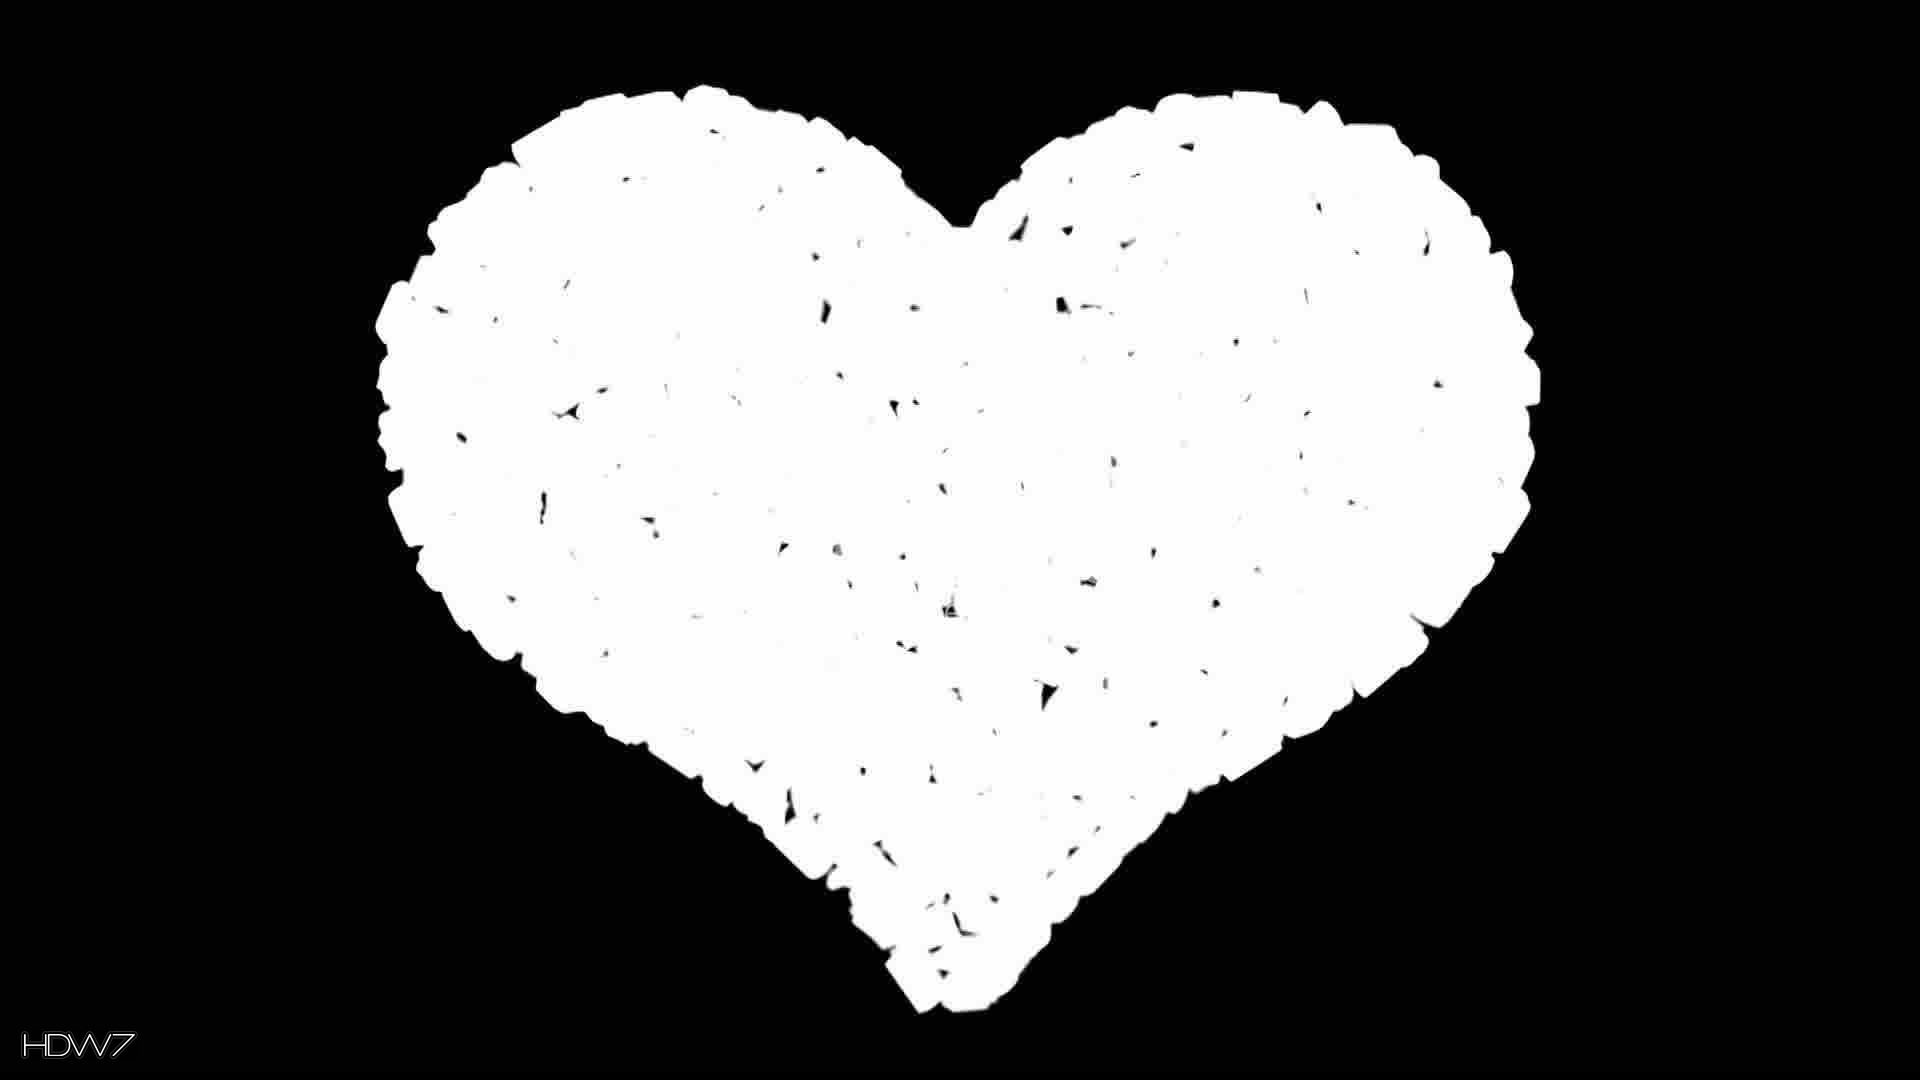 1920x1080 black and white heart wallpaper - photo #10